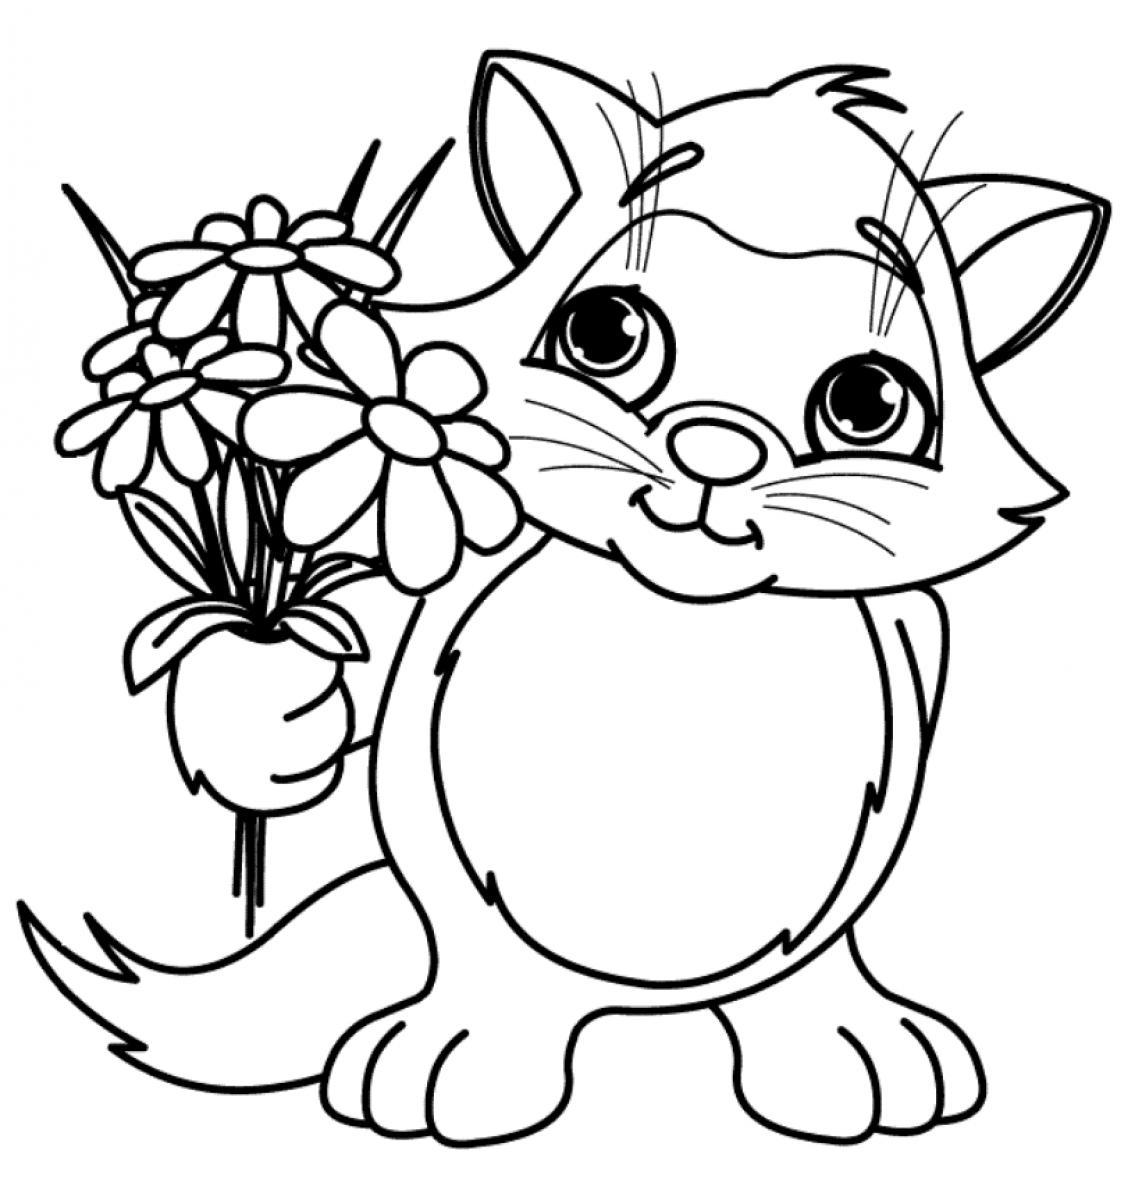 childrens coloring pages flowers free printable flower coloring pages for kids best flowers childrens coloring pages 1 1